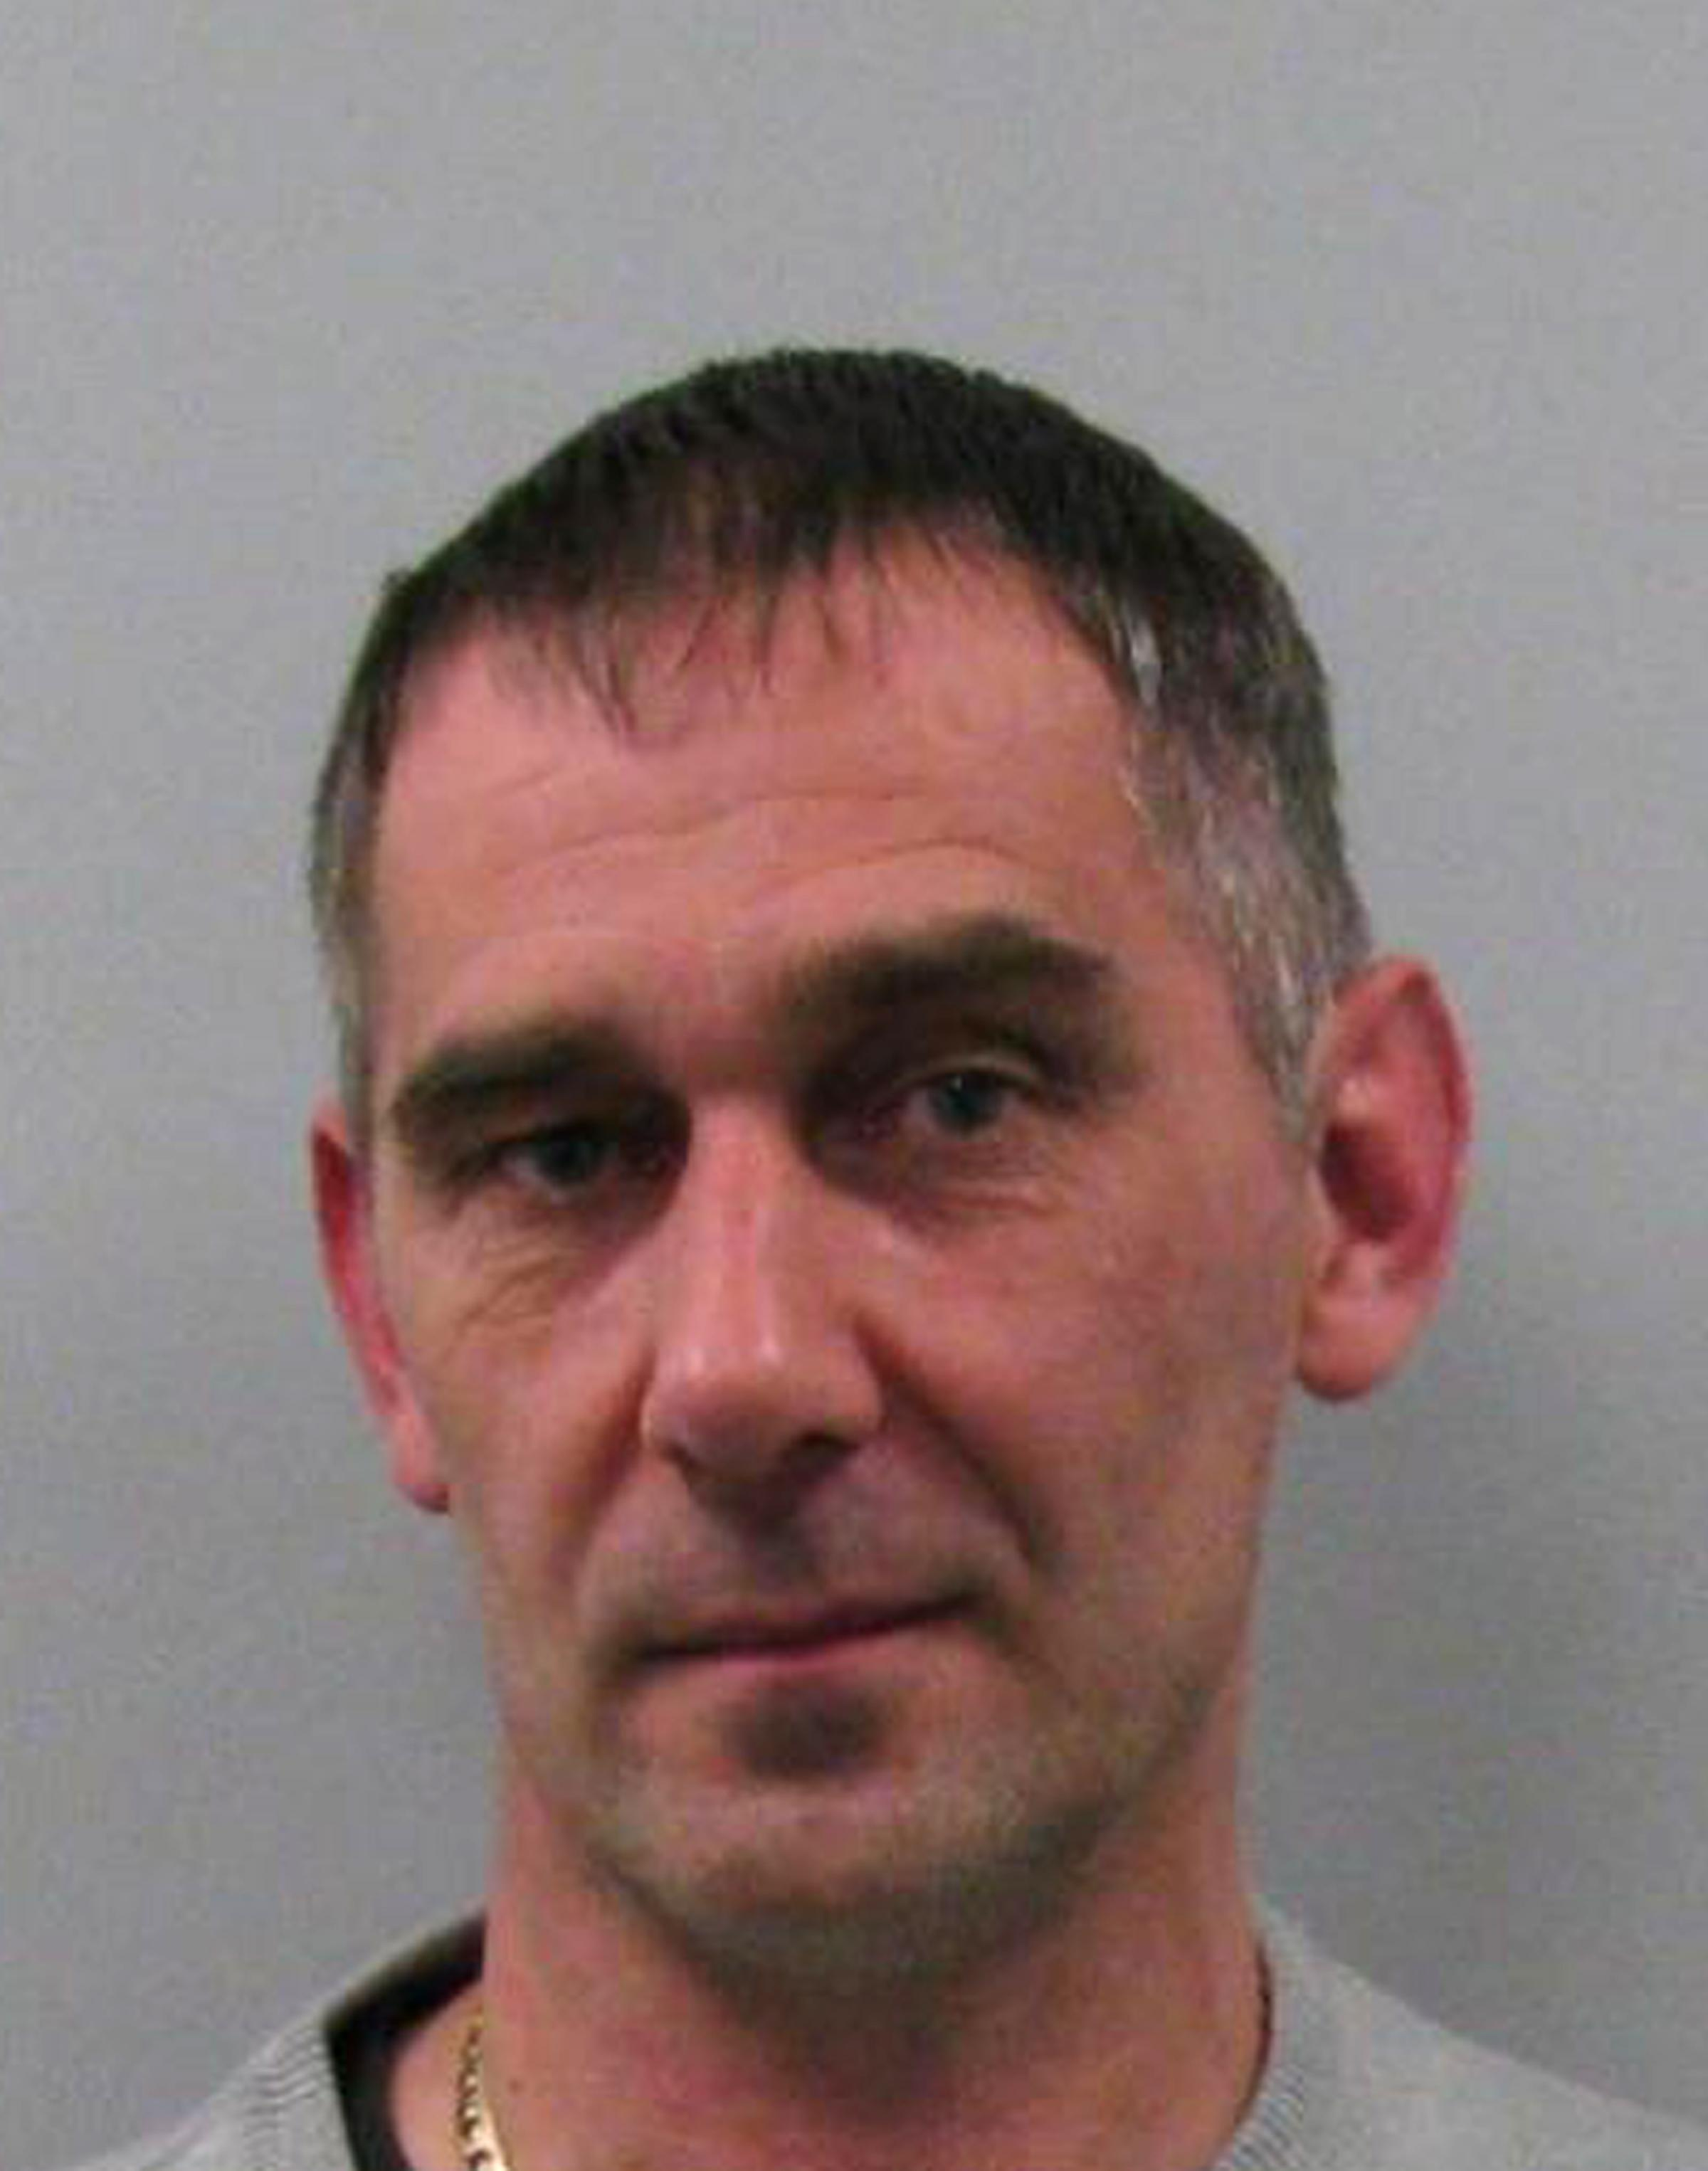 JAILED: Serial predatory paedophile Jeffrey Errington has been jailed for 24 years for abusing 11 boys